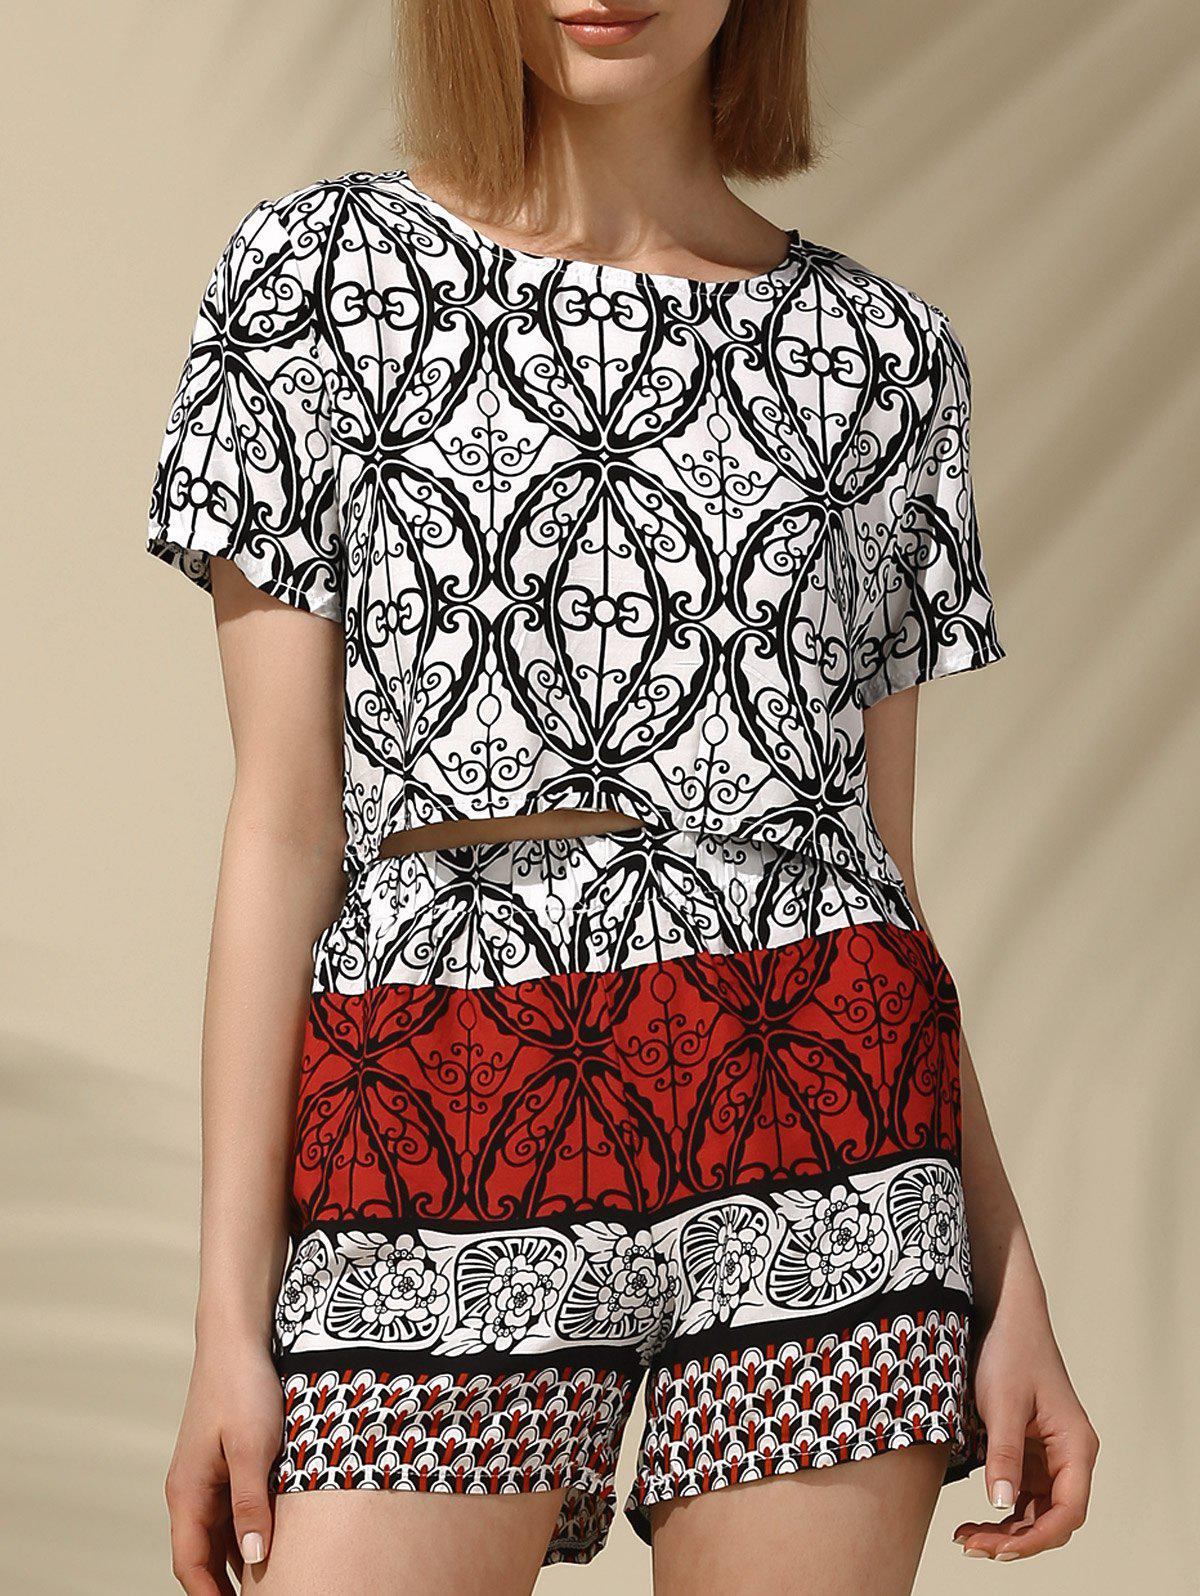 Ethnic Women's Jewel Neck Printed Crop Top and Shorts Set - RED L